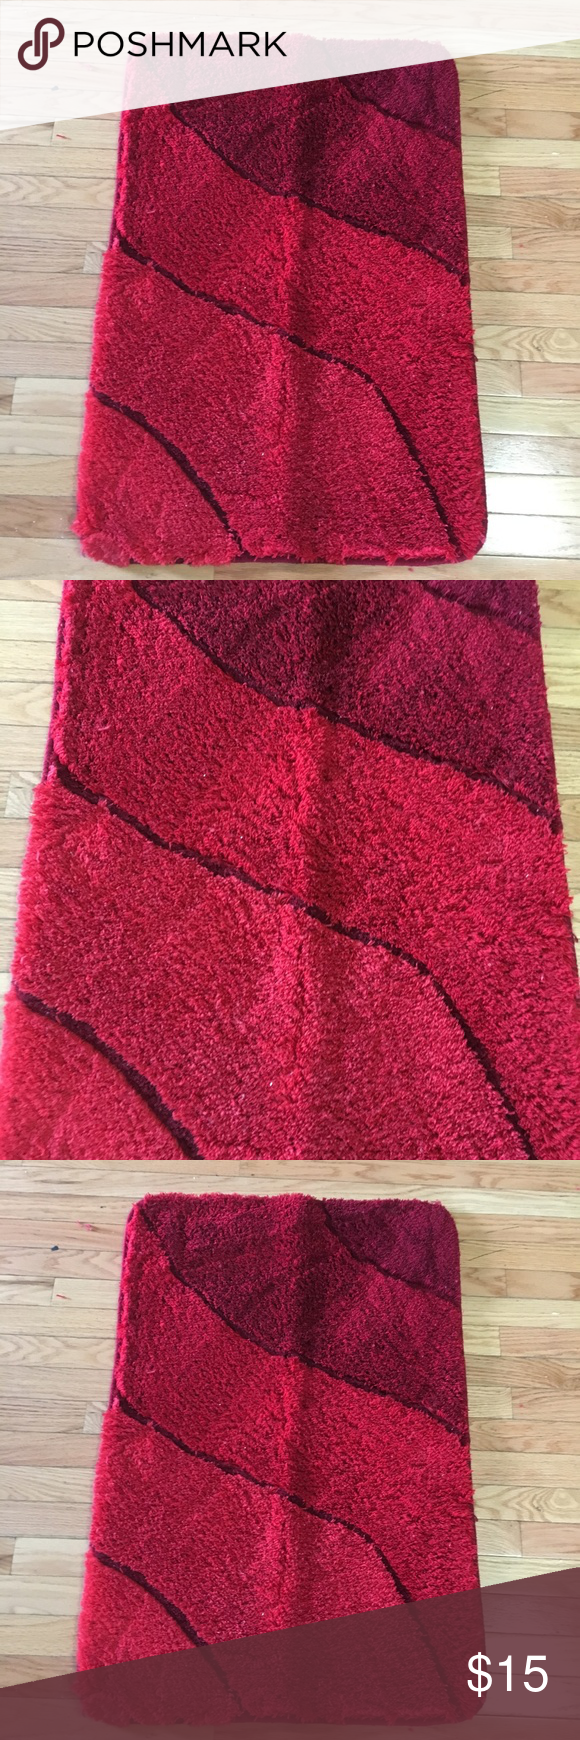 Plush Washable Red Bathroom Rugs Large Like New Luxury Large Red Bath Rug This Sculpted Red Bathroom Rug Has A Red Bathroom Rugs Bathroom Red Bathroom Rugs